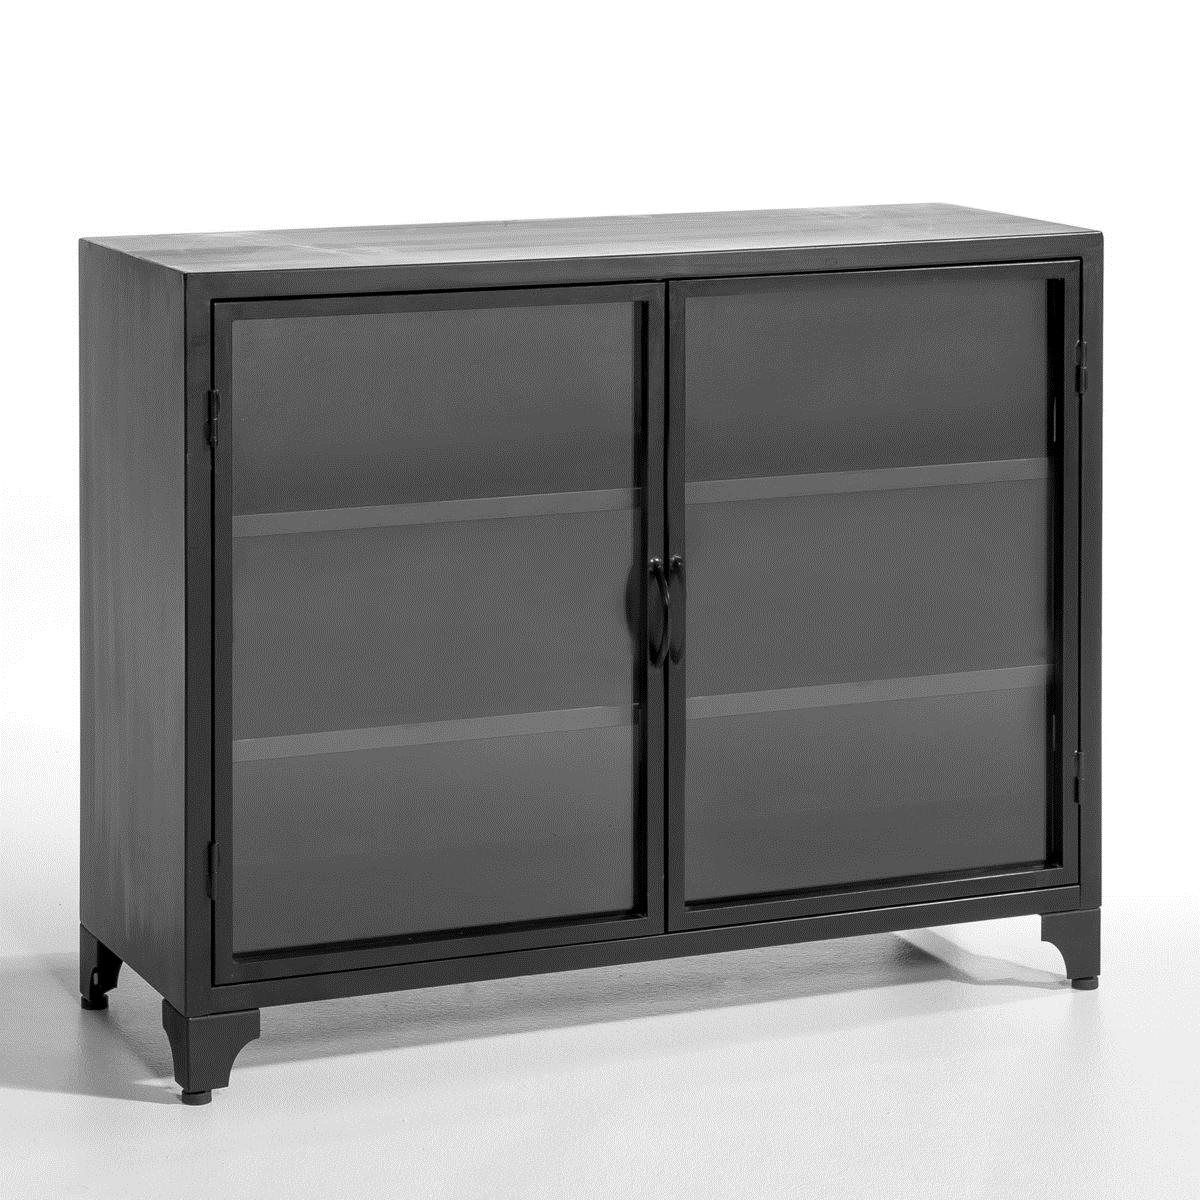 meubles am pm achat meuble bas kargo m tal portes vitr es. Black Bedroom Furniture Sets. Home Design Ideas